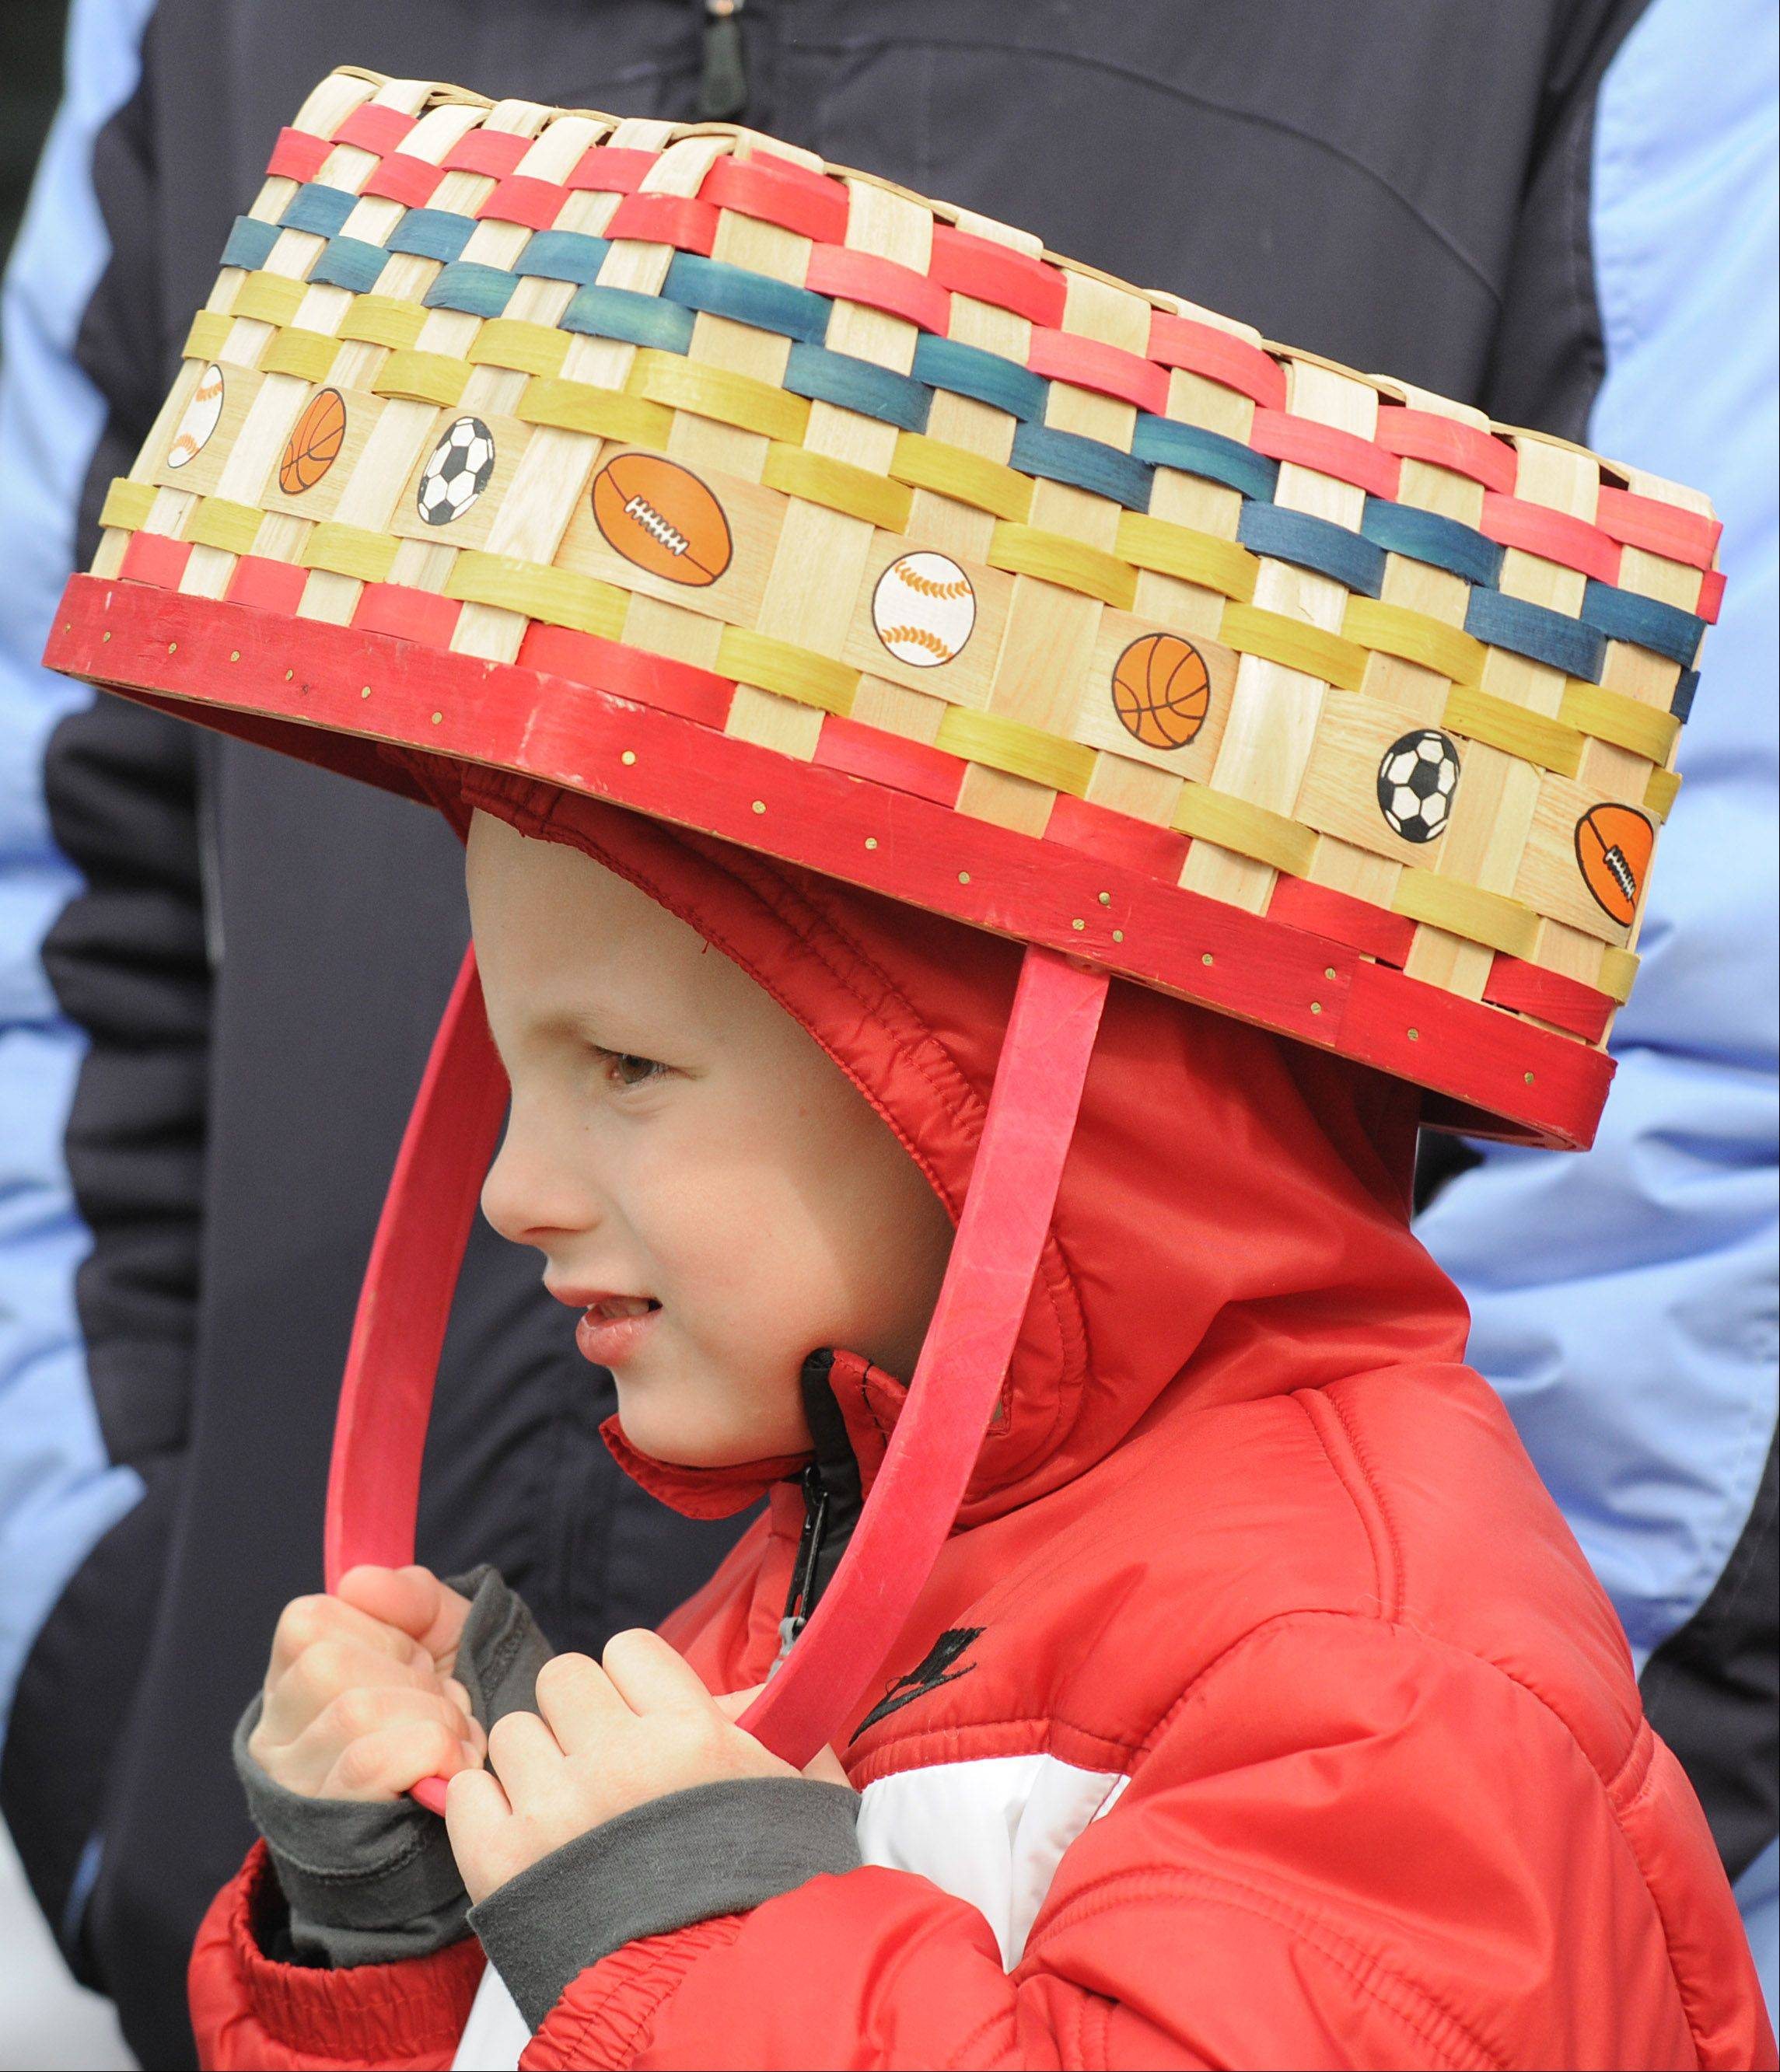 David Kimpel, 5, of Lake in the Hills, dons his basket while waiting for an Easter egg hunt in Algonquin.